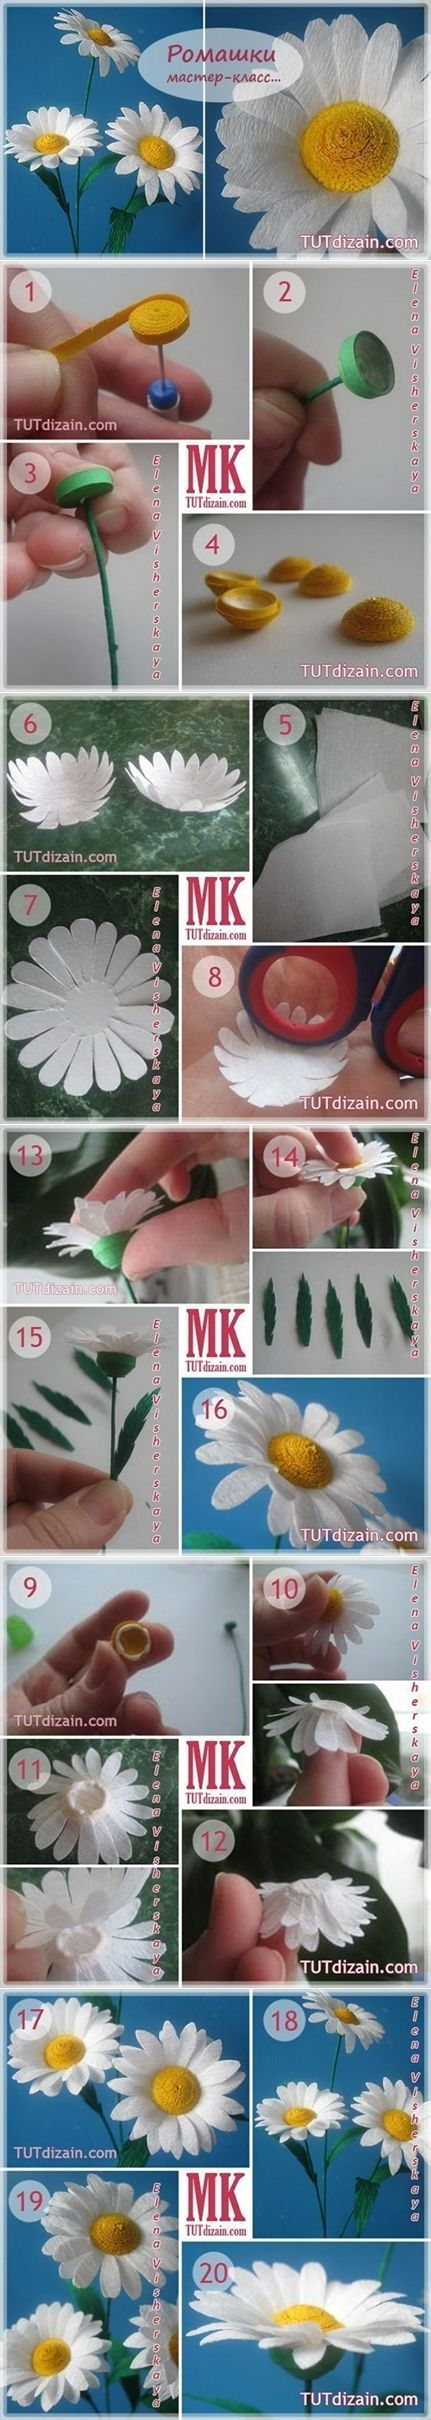 daisy Quilled bouquet tutorial http://www.fabartdiy.com/diy-quilled-wild-daisy-bouquet/